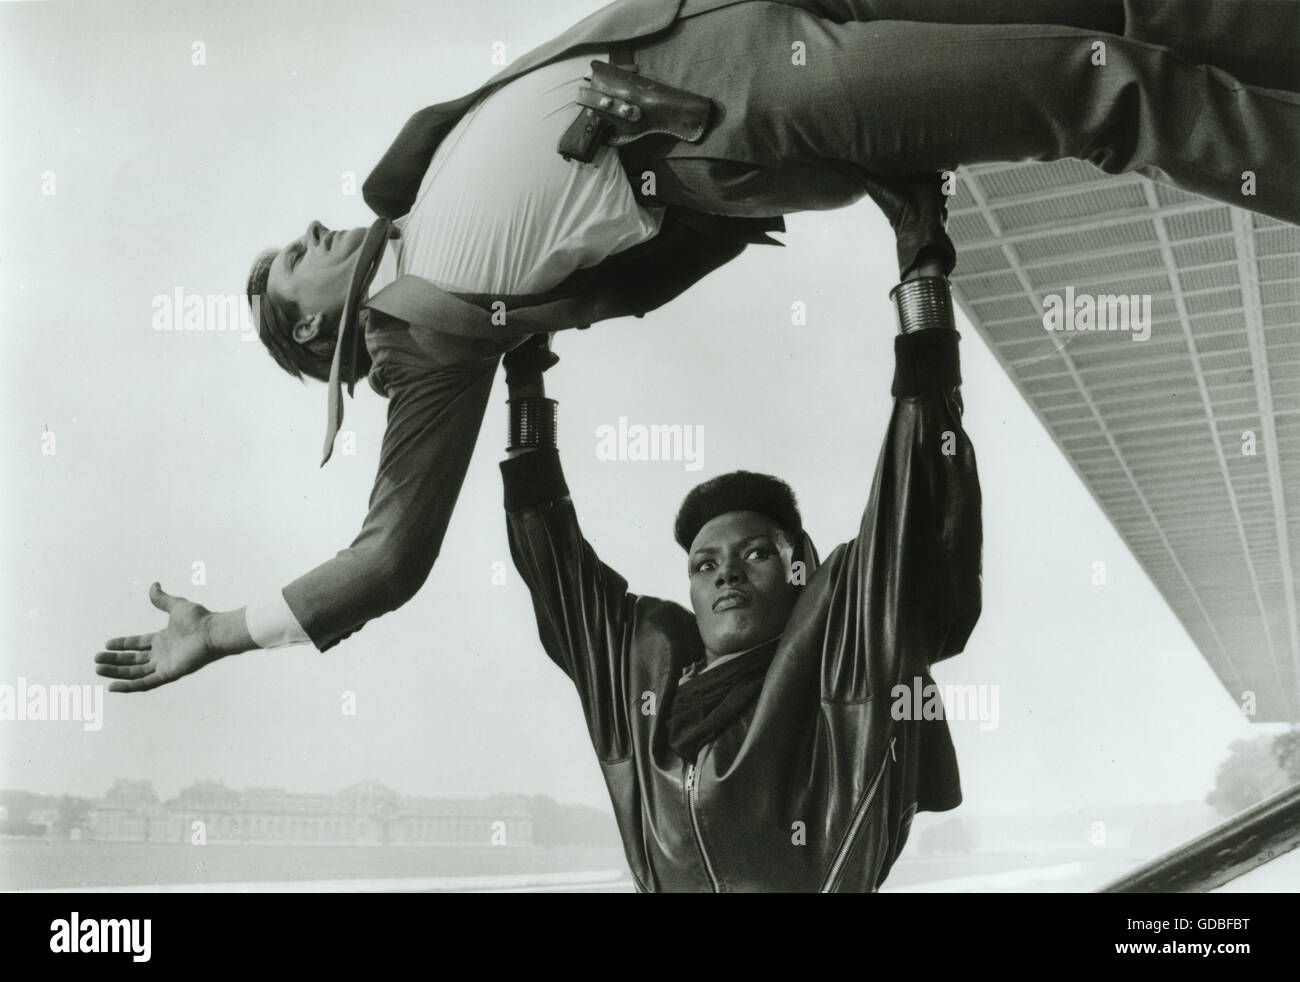 FILM A View to a Kill (1985, John Glen) Grace Jones (May Day) overpowers a KGB agent. - Stock Image